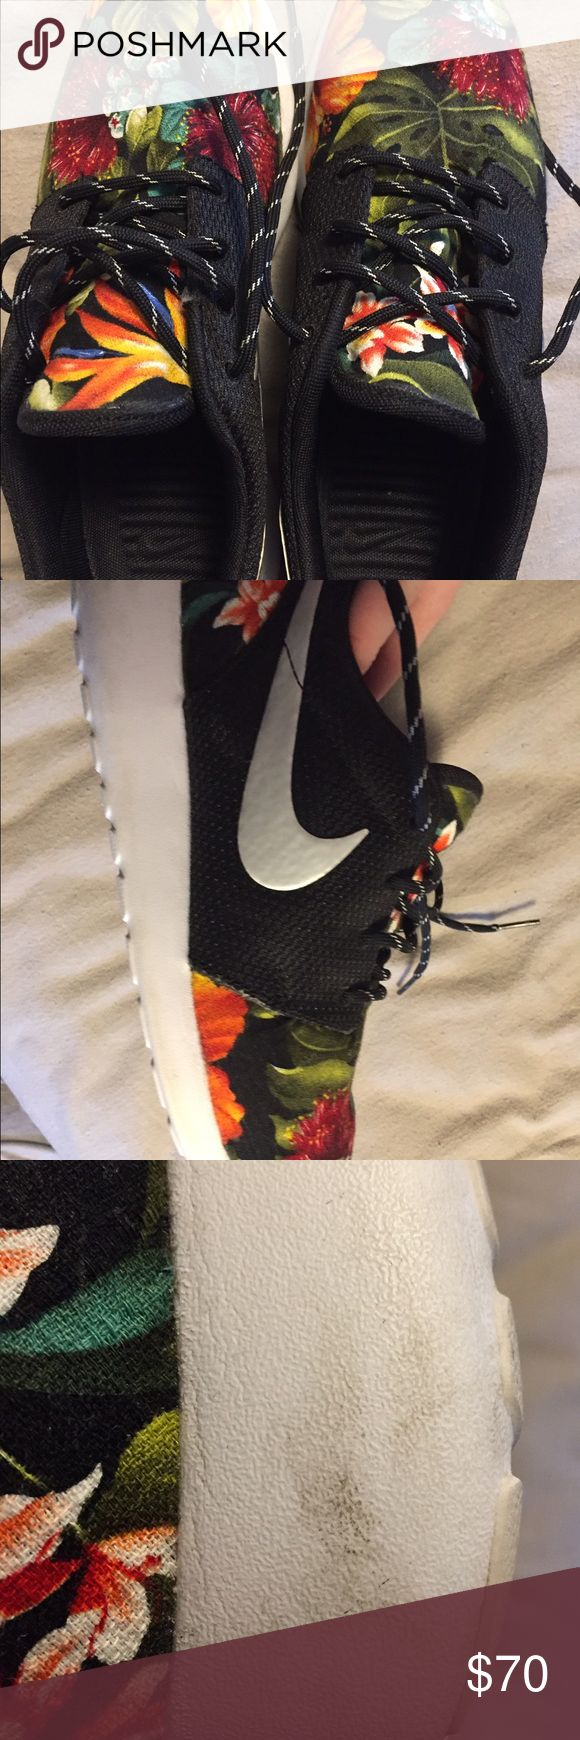 Floral Nike sneakers Worn 3x's adorable floral Nike sneakers size 9. I loveeee these shoes so much but since being pregnant I got in nothing anymore😫. Smoke free home! Nike Shoes Athletic Shoes